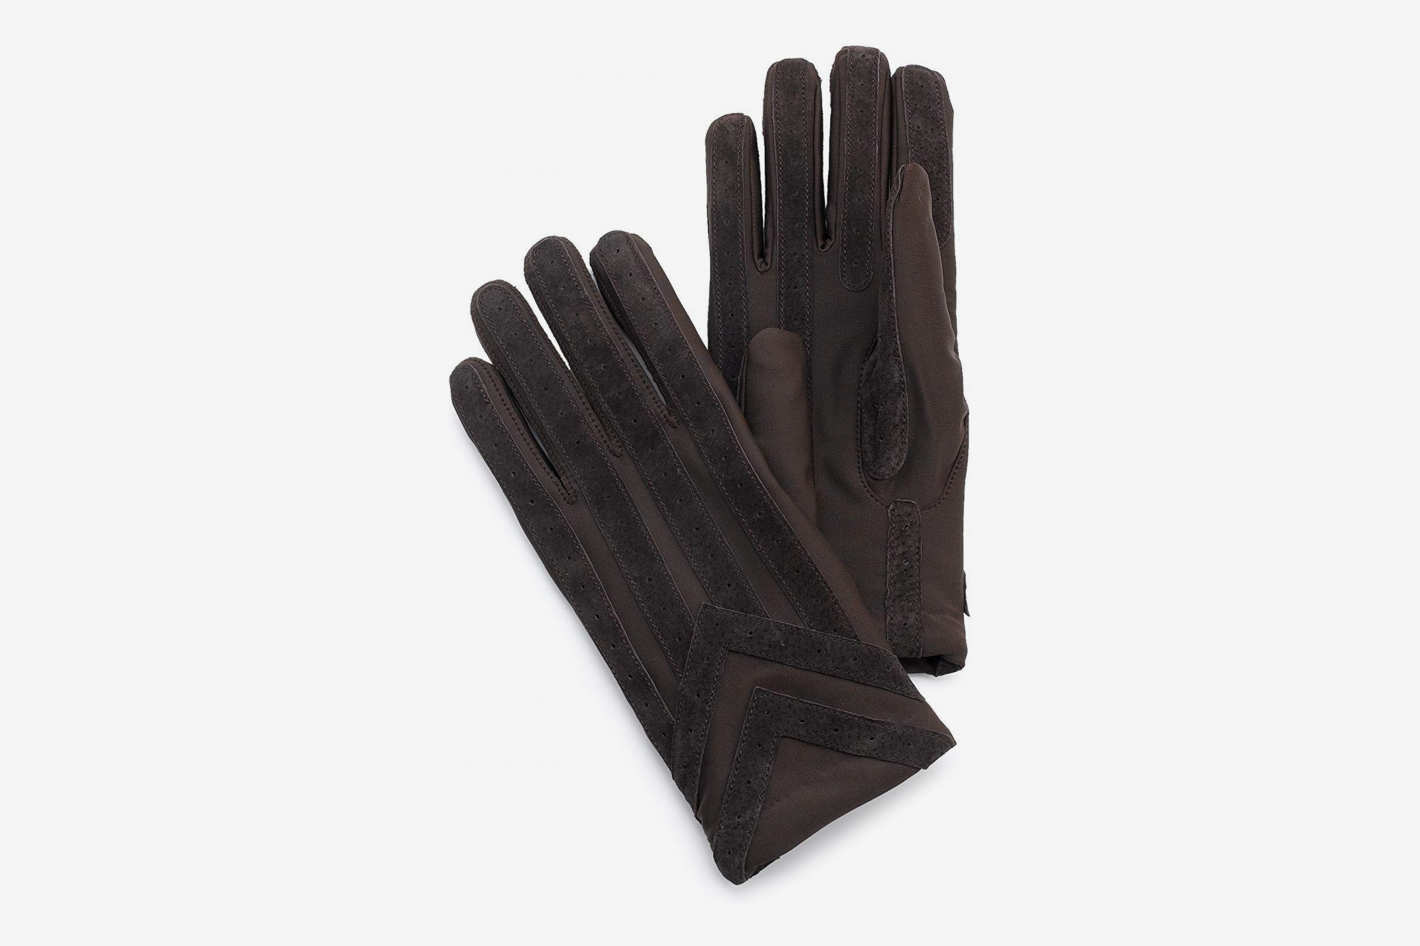 Isotoner Men's Spandex Glove With Suede Palm Strips